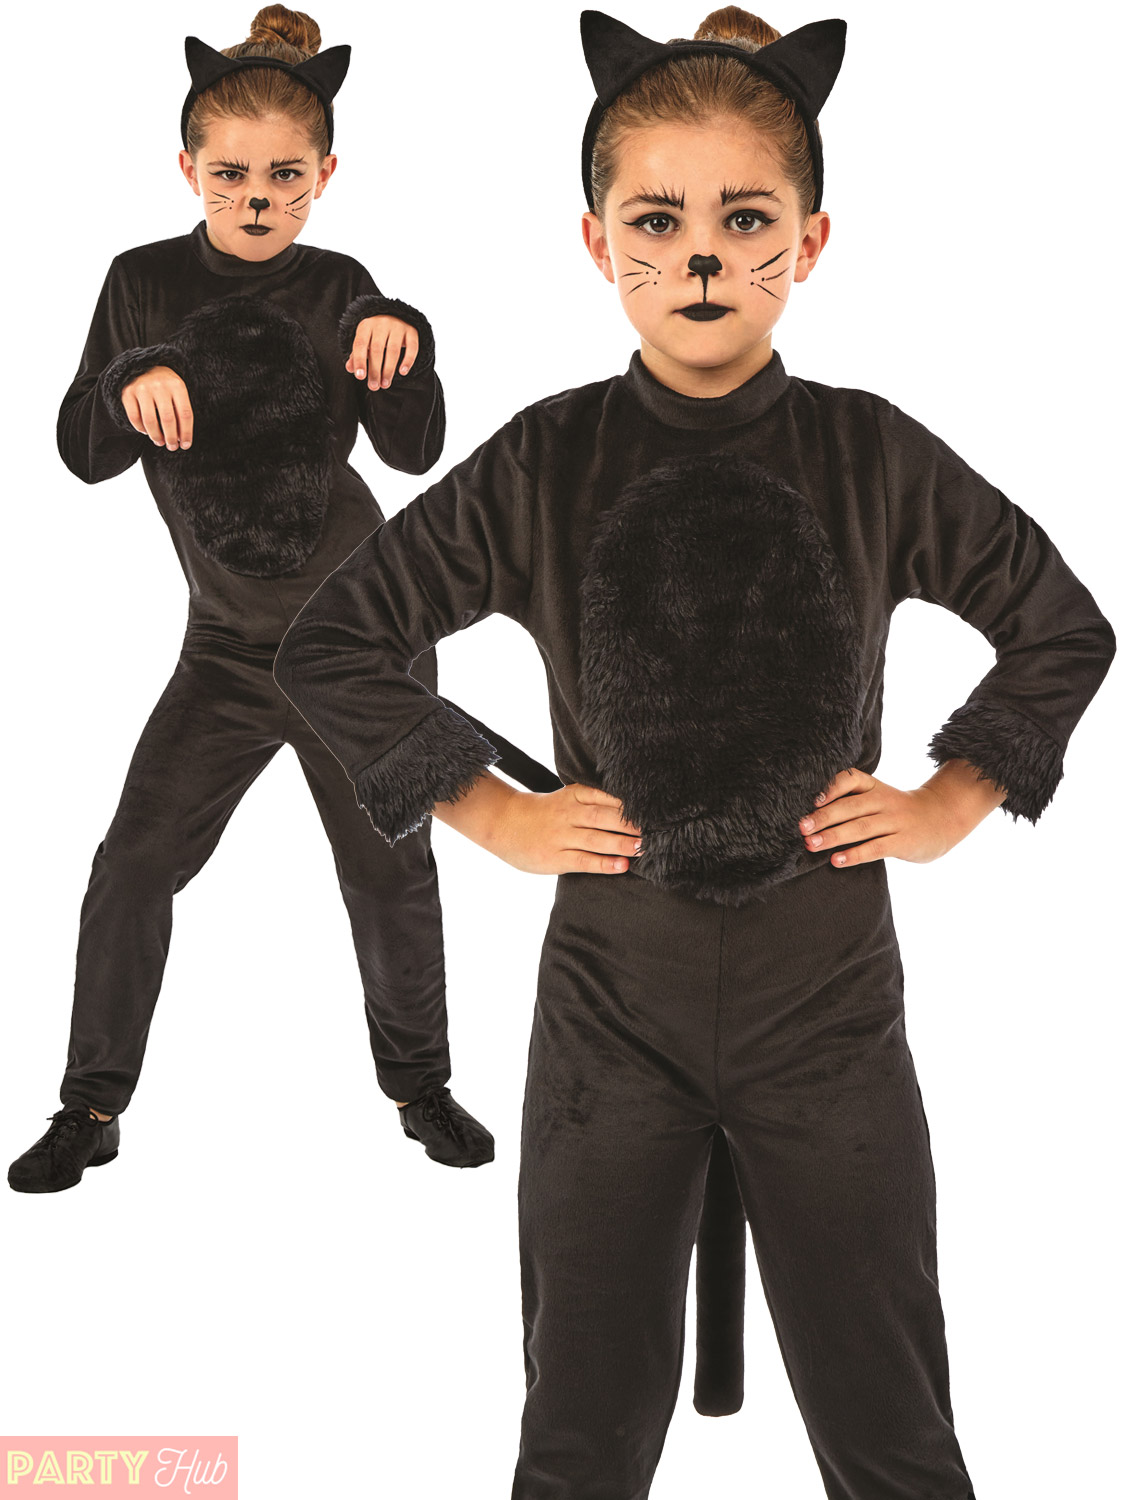 Childs Black Cat Costume Girls Halloween Animal Fancy  sc 1 st  Meningrey & Black Cat Costume For Toddler Girl - Meningrey